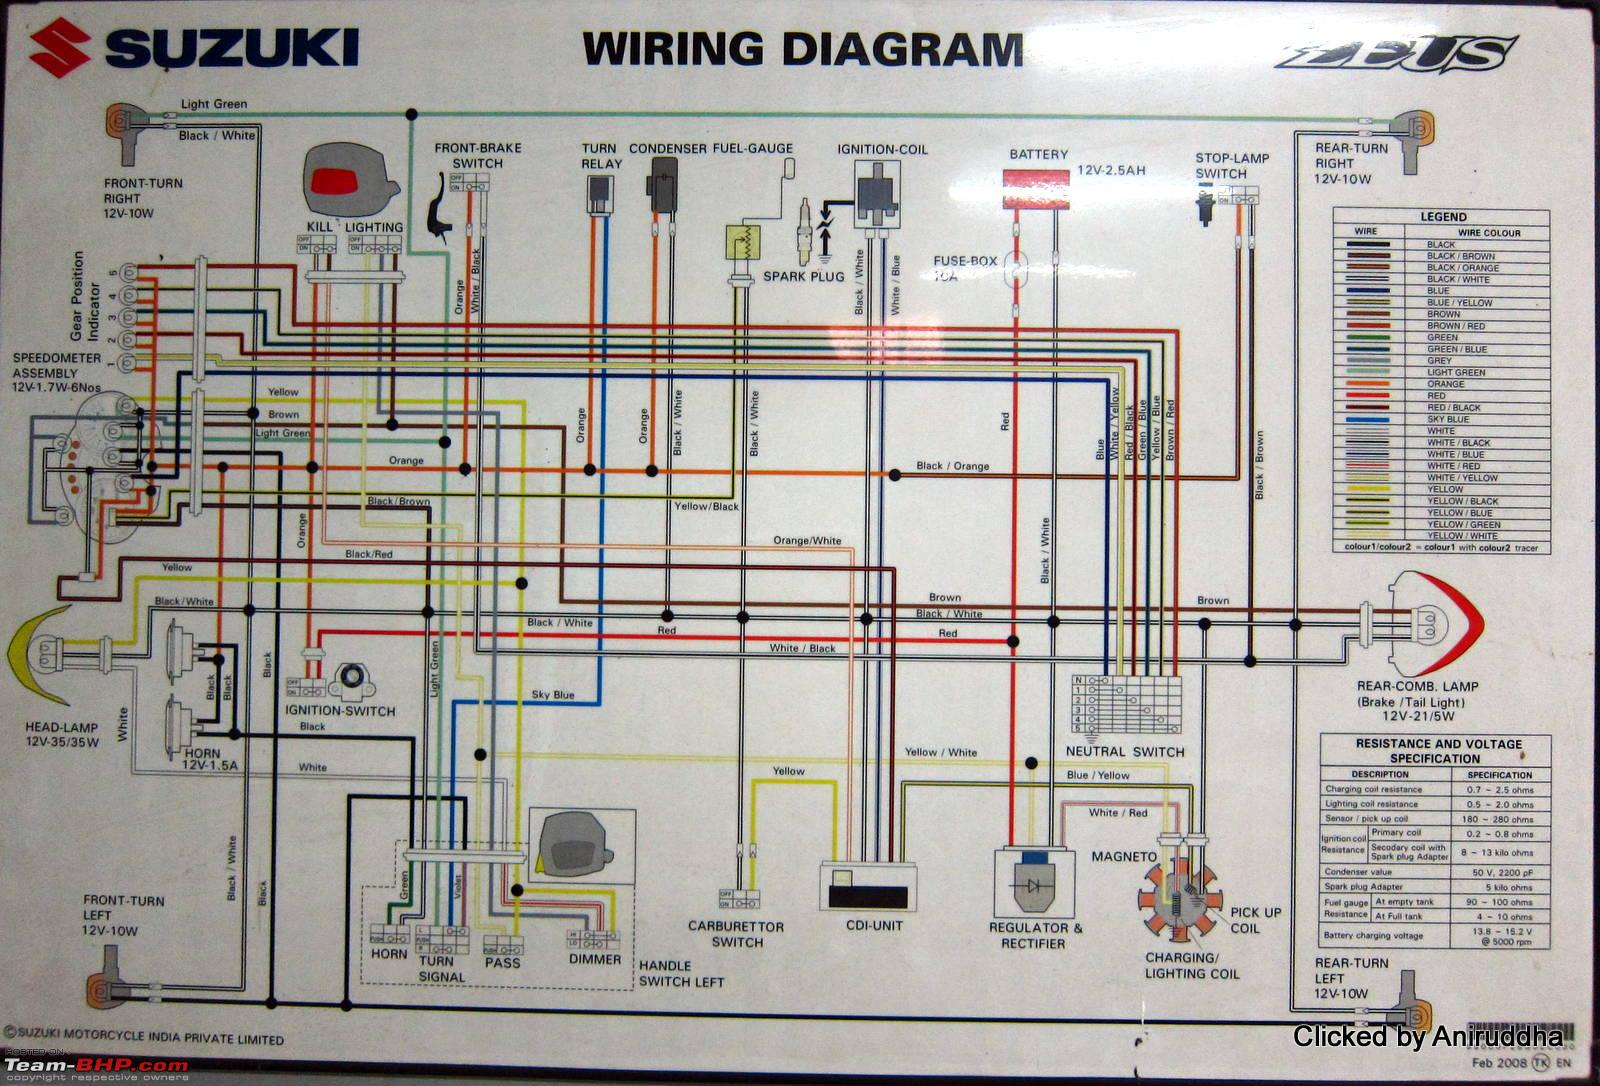 Aprilia 125 Wiring Diagram Data Diagrams Fuel Pump Wire Schema Circuit Of Indian Motorcycles And Scooters Team Bhp Habana Tuareg